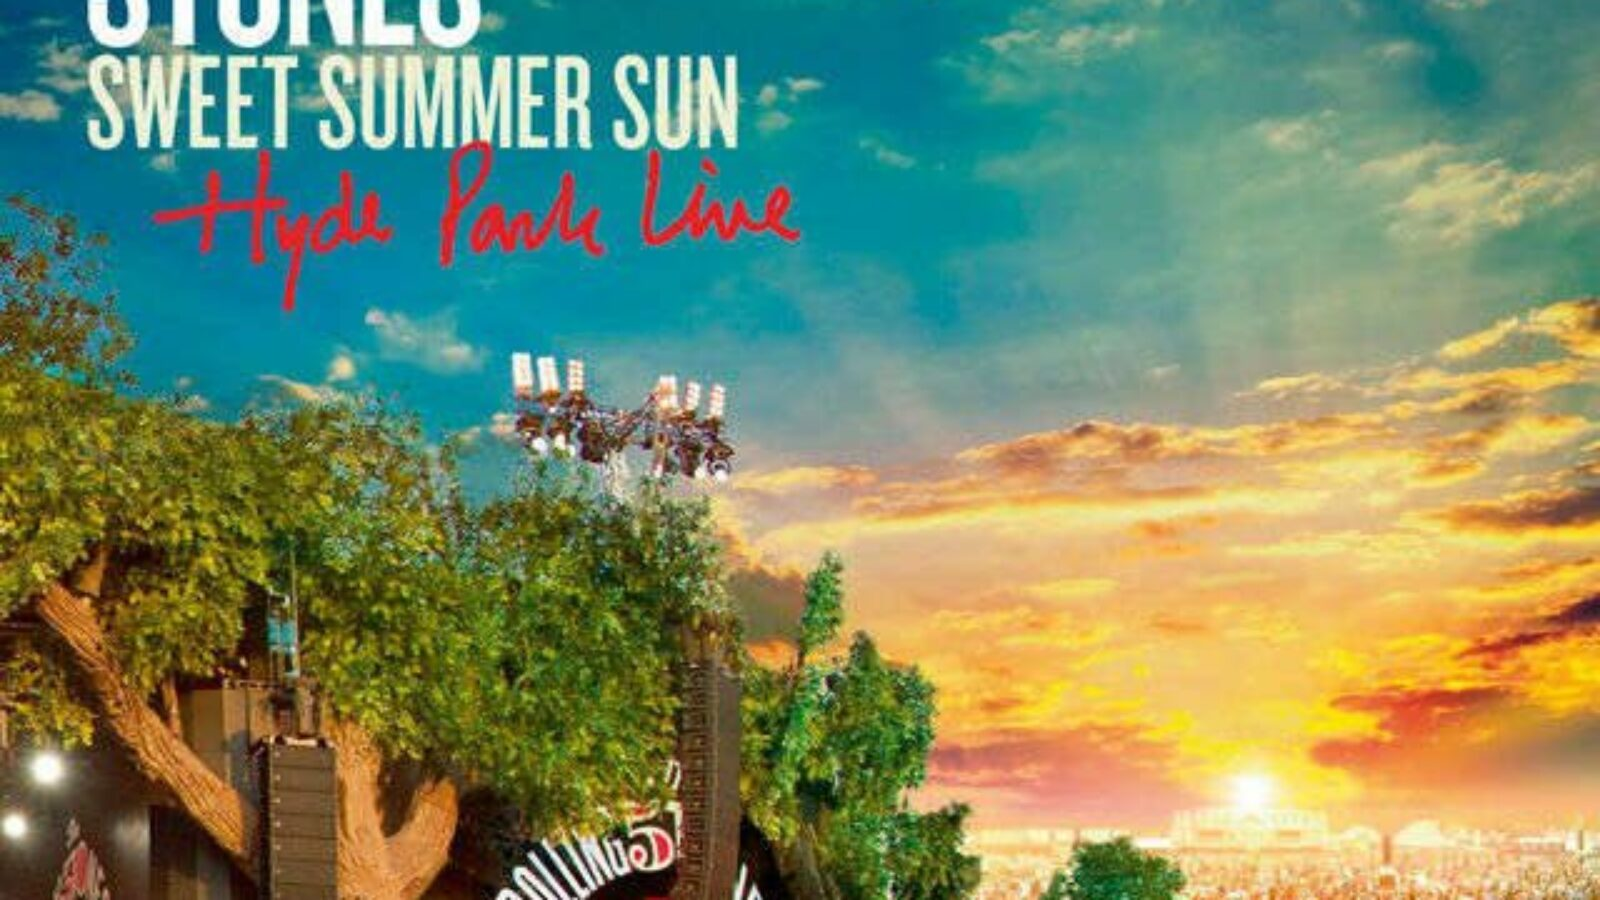 THE ROLLING STONES – Sweet Summer Sun – Hyde Park Live (DVD/Blu-ray/CD)